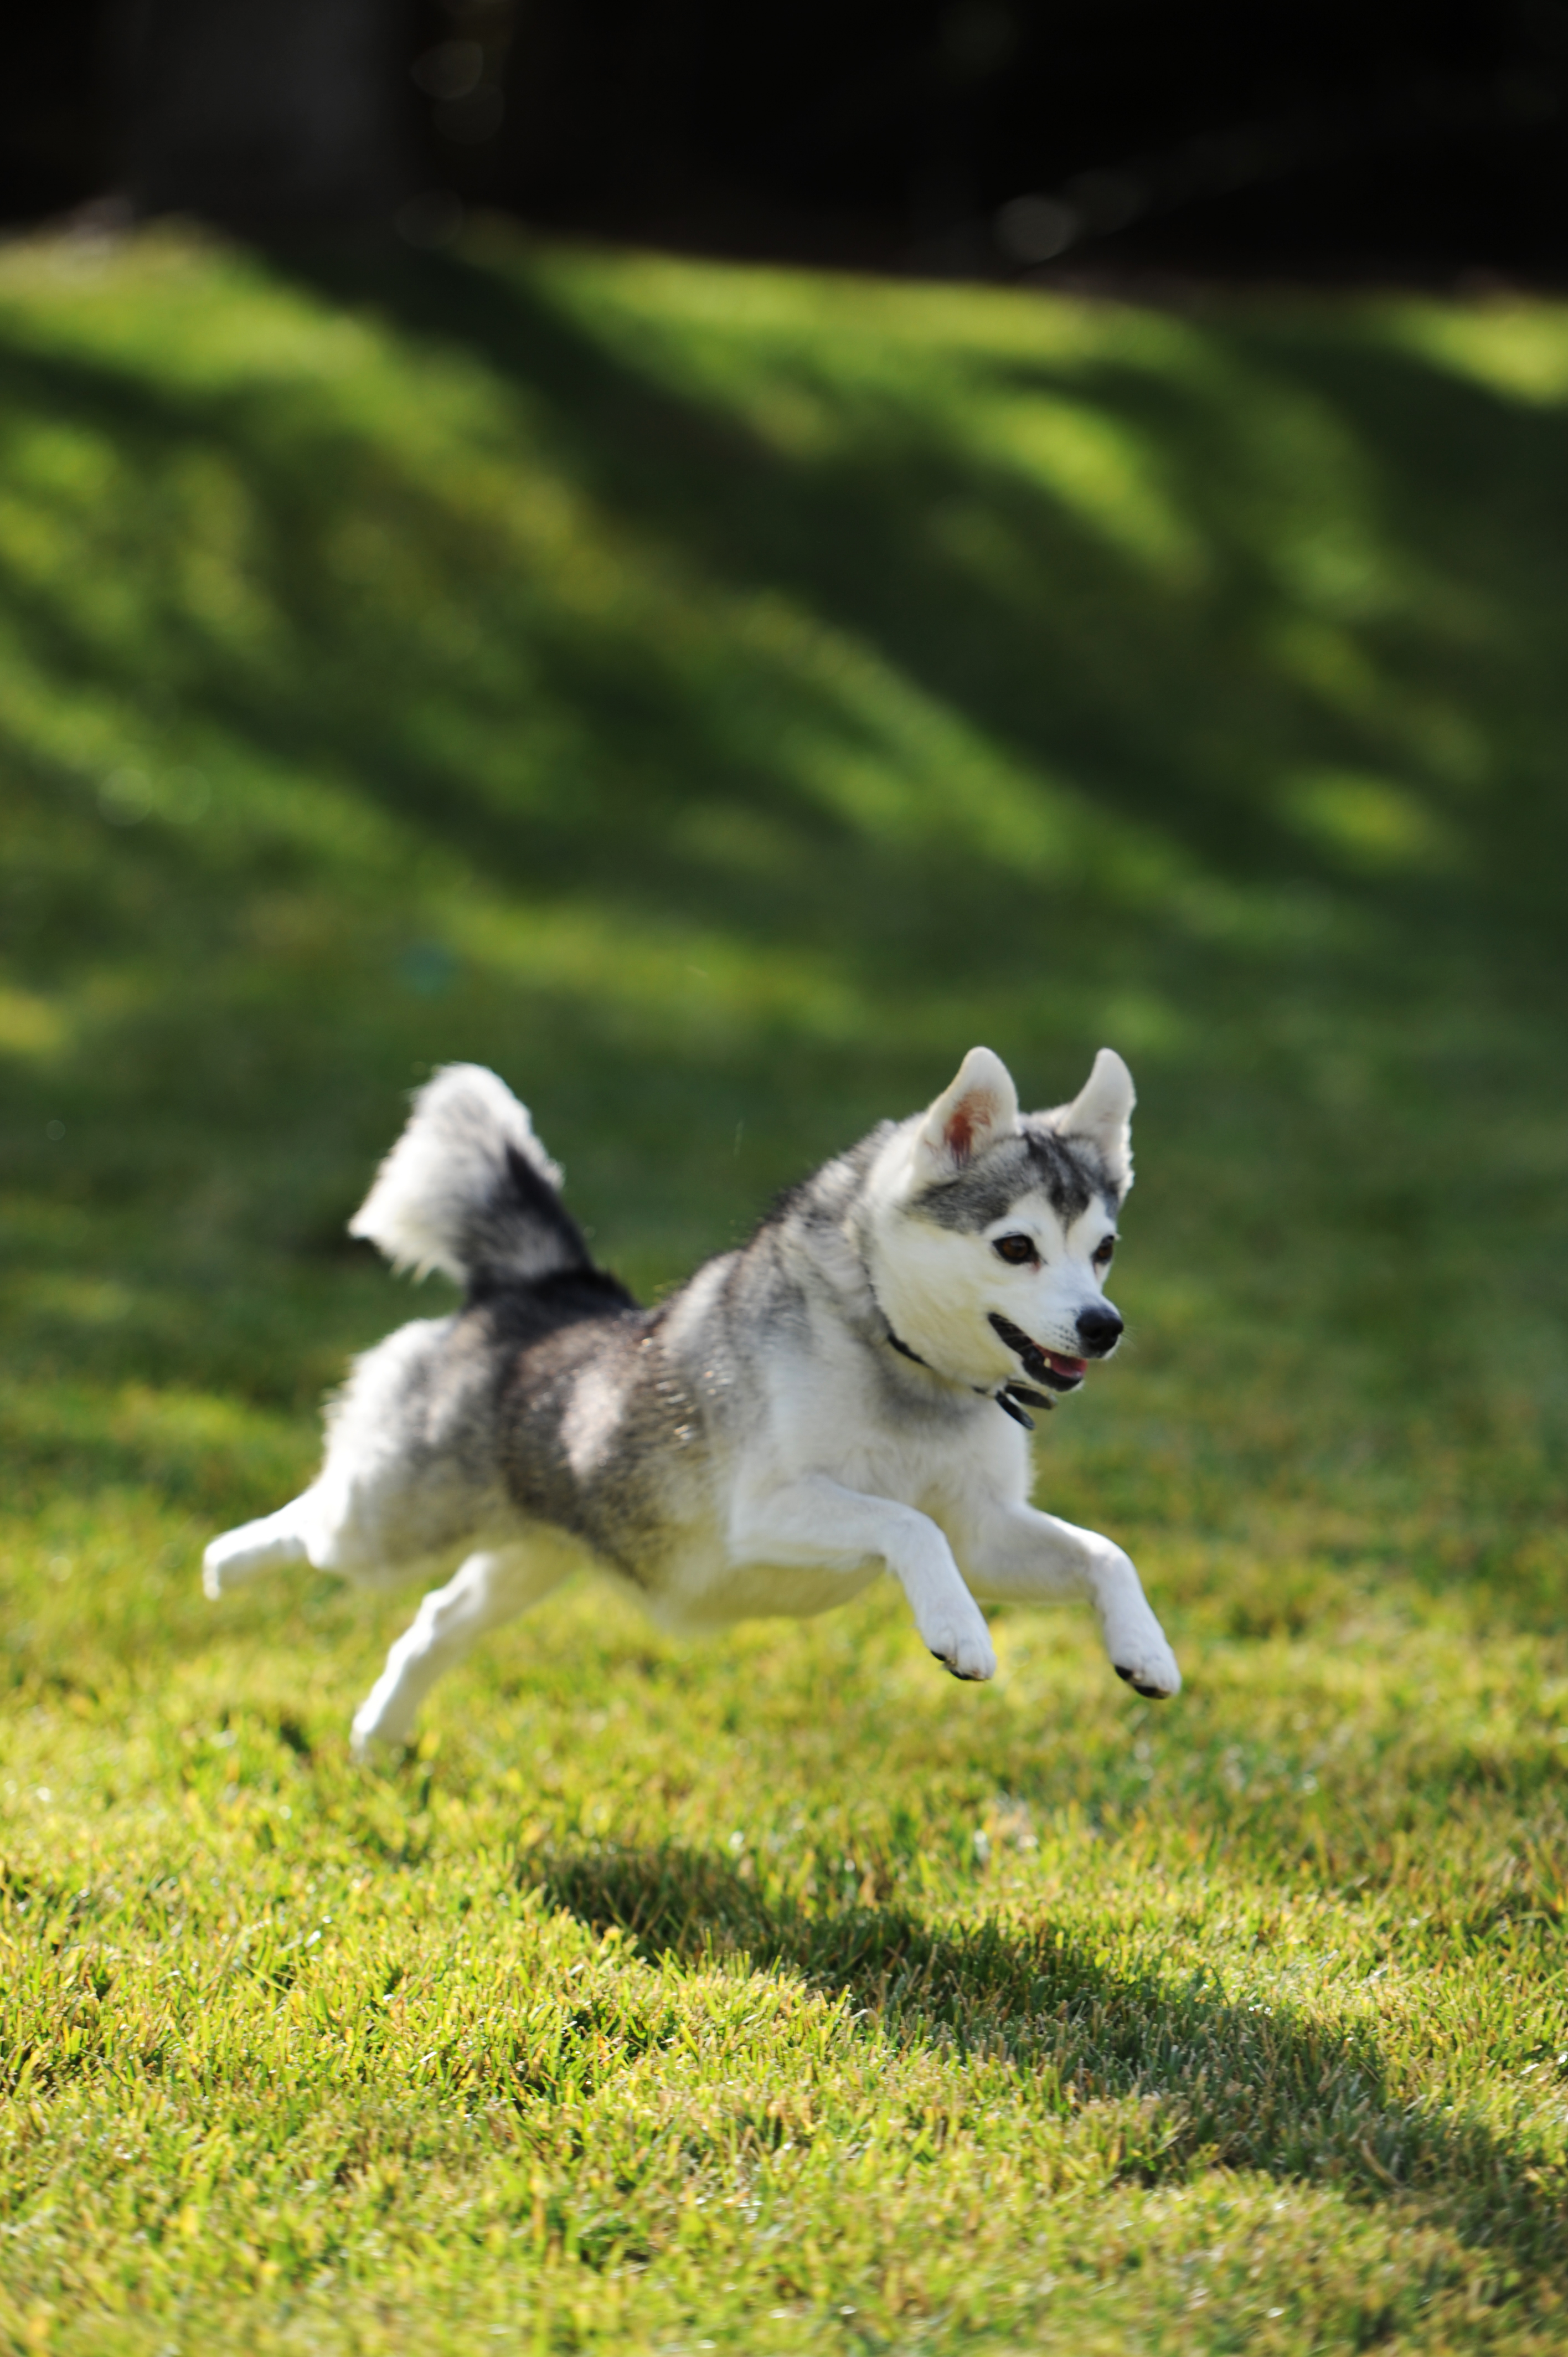 Alaskan Klee Kai playing on a meadow photo and wallpaper ...